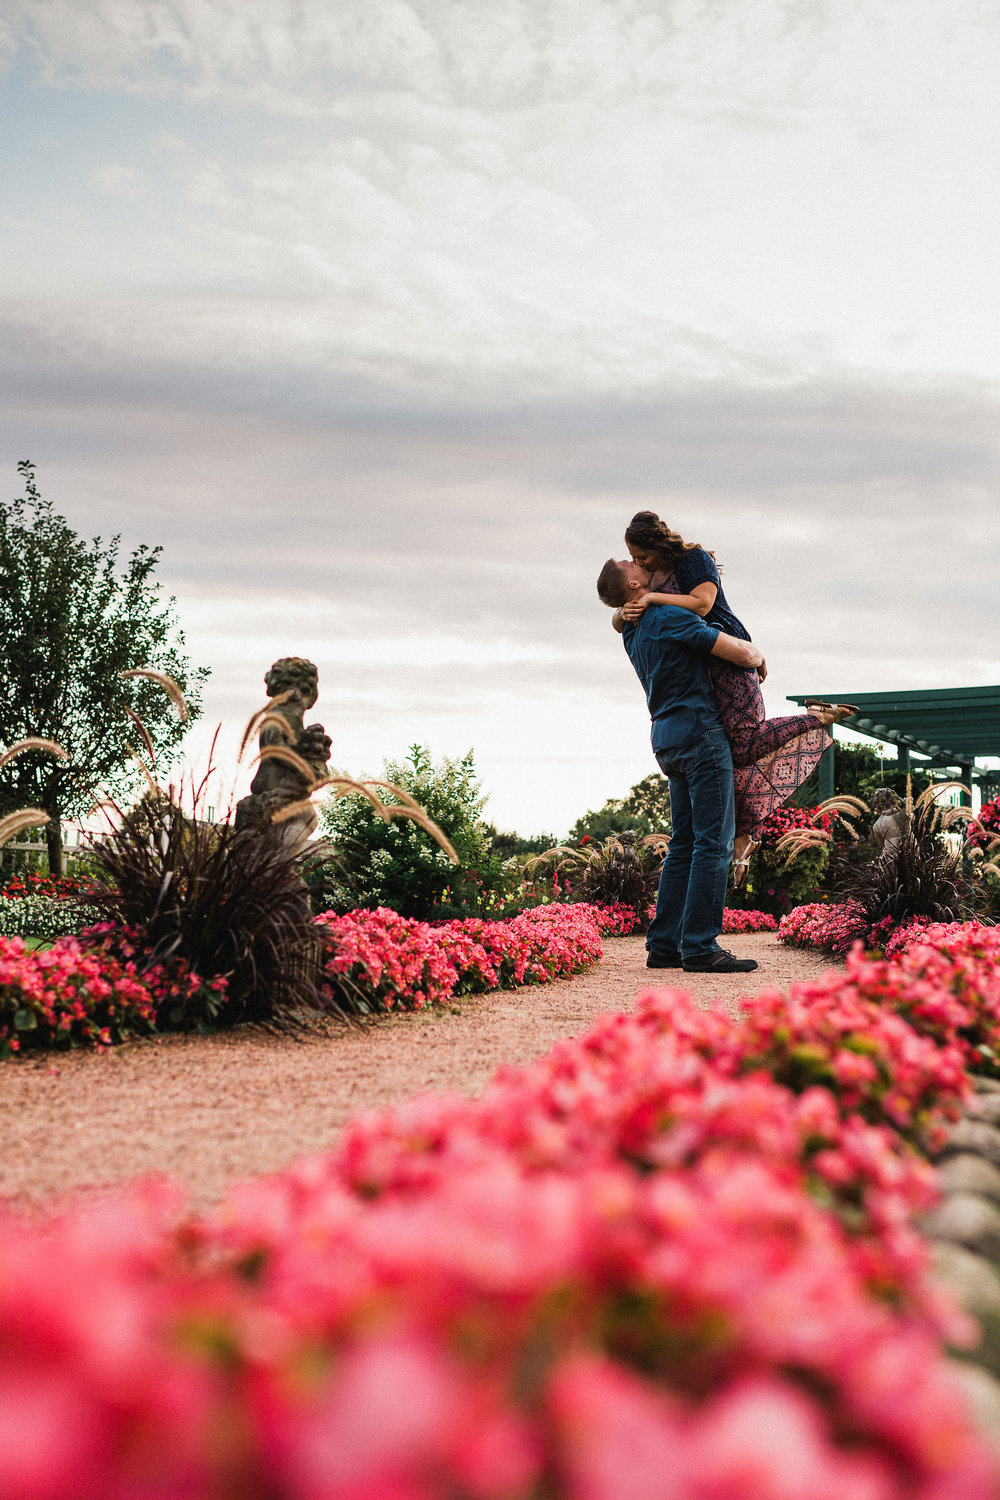 Man lifts his fiance up and kisses her on a garden path lined in pink flowers.